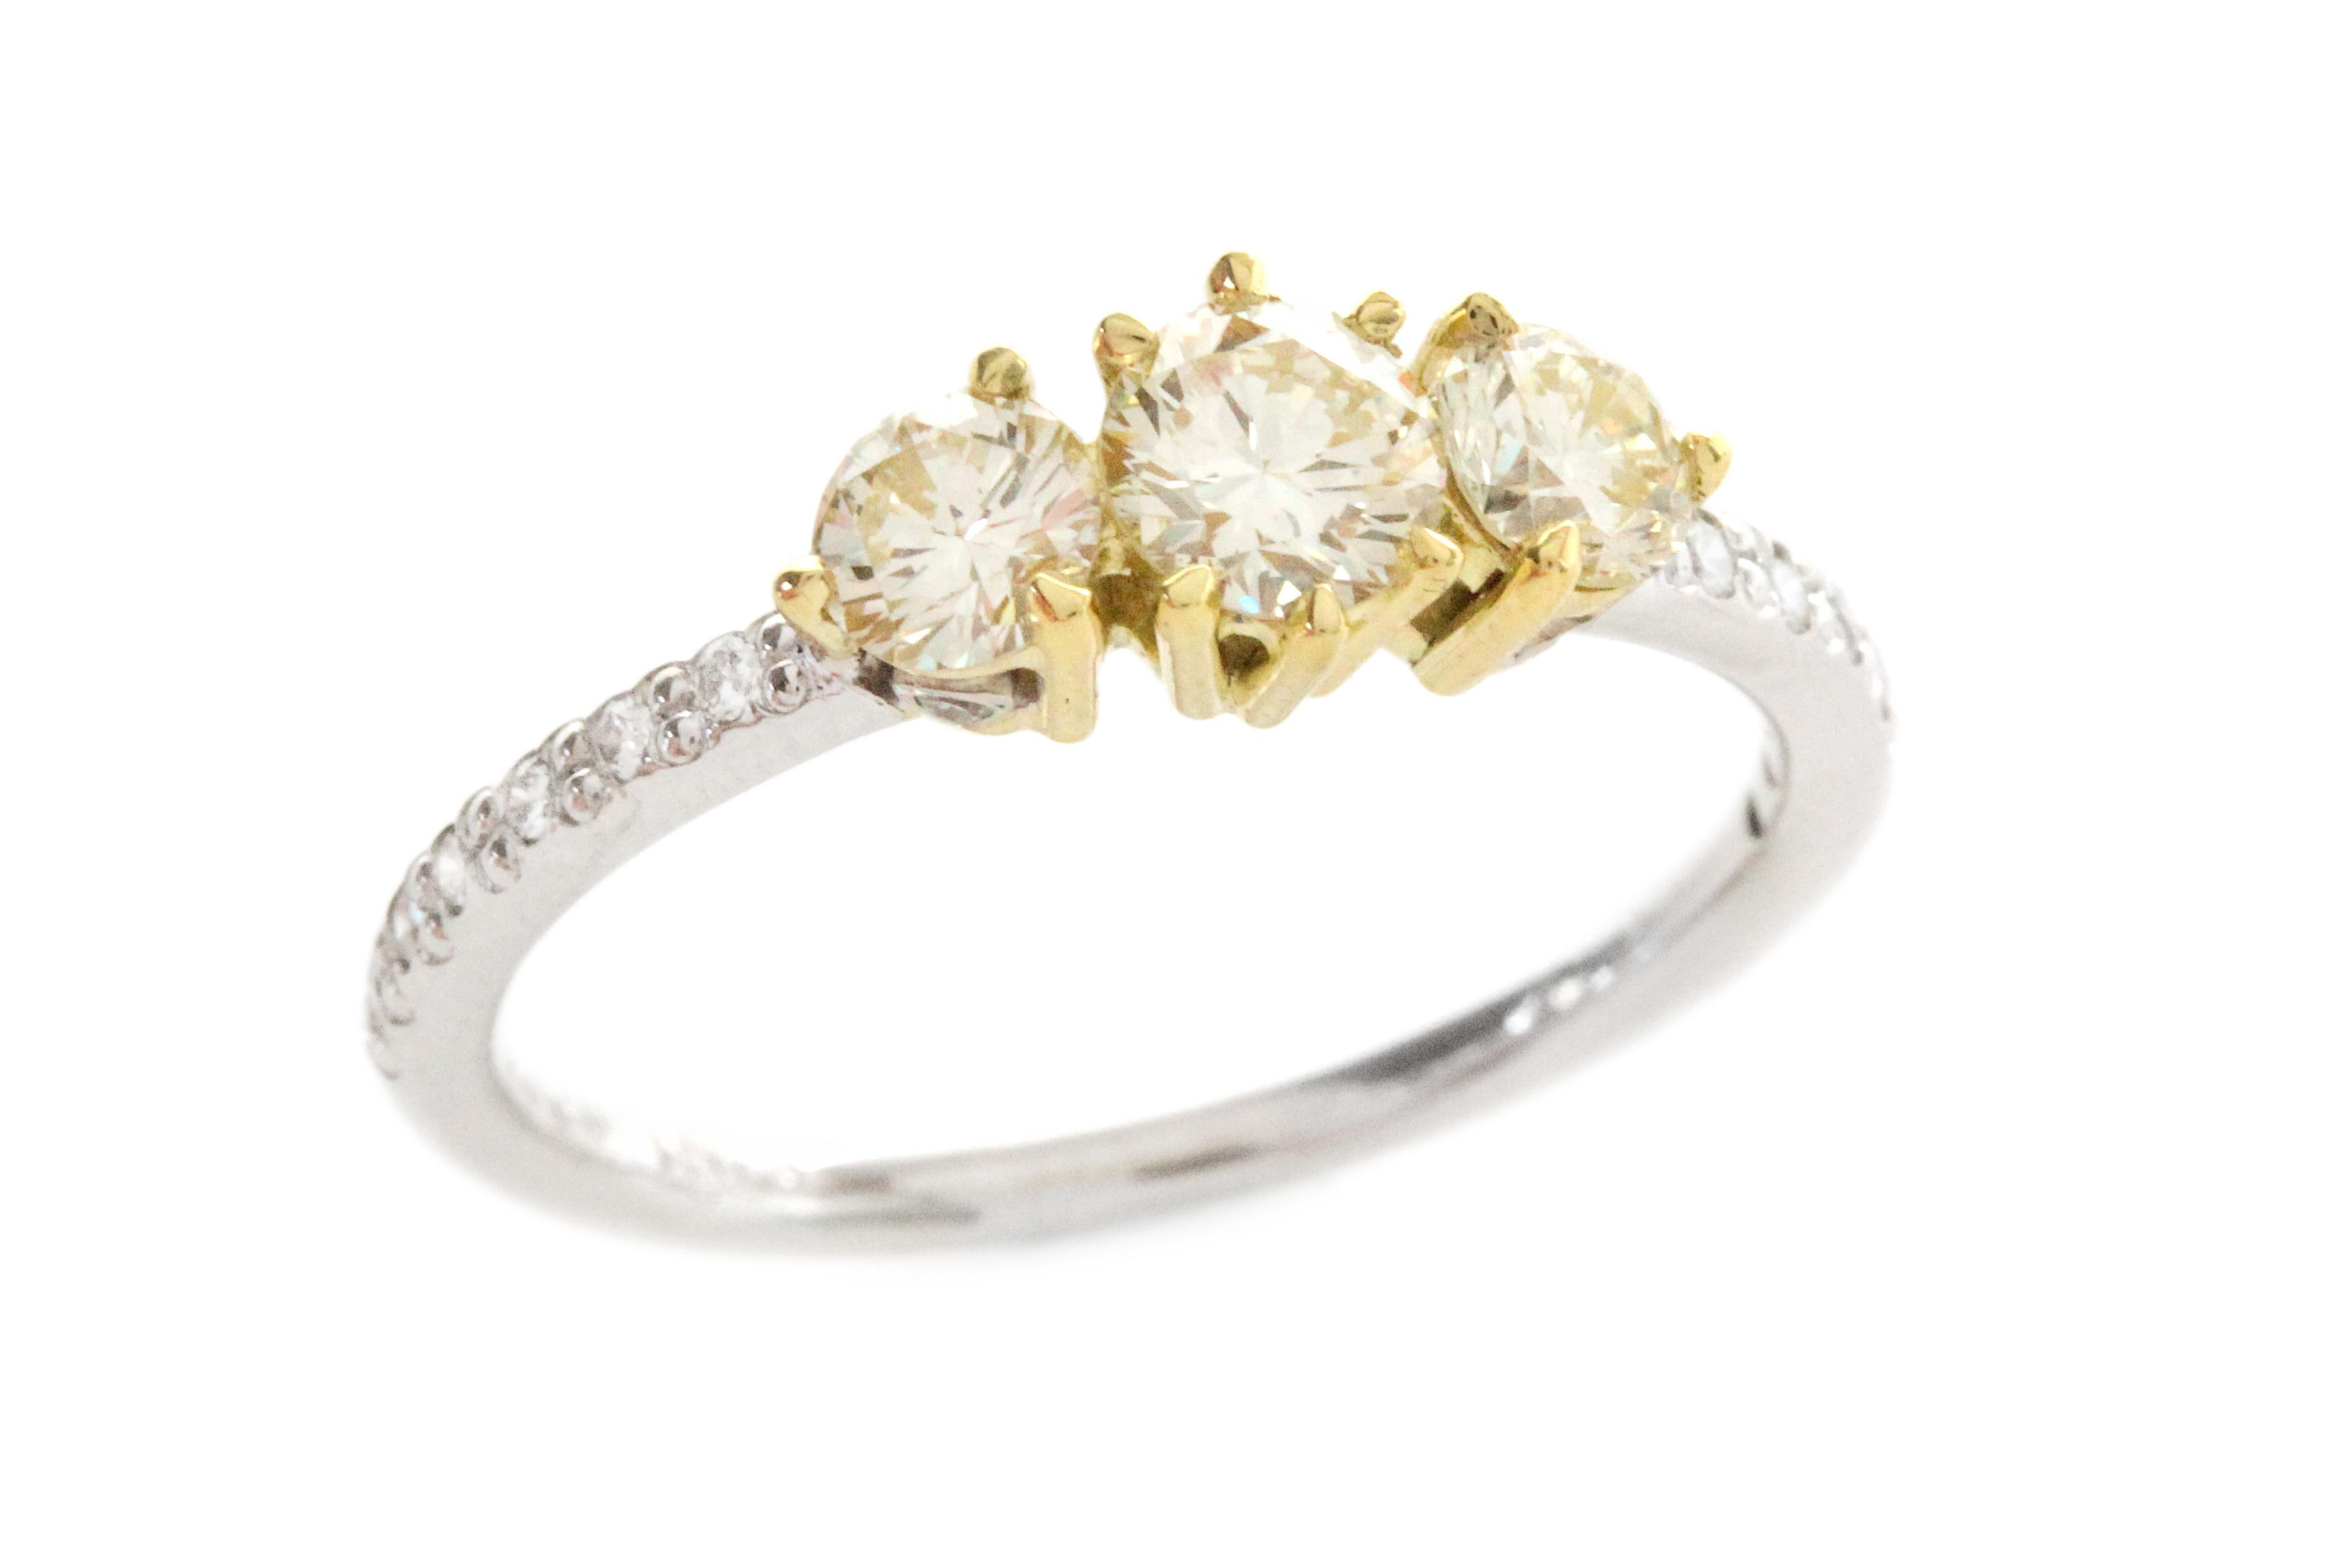 18ct Yellow and White Gold Trilogy Ring with Yellow and White Diamonds - 50% OFF!